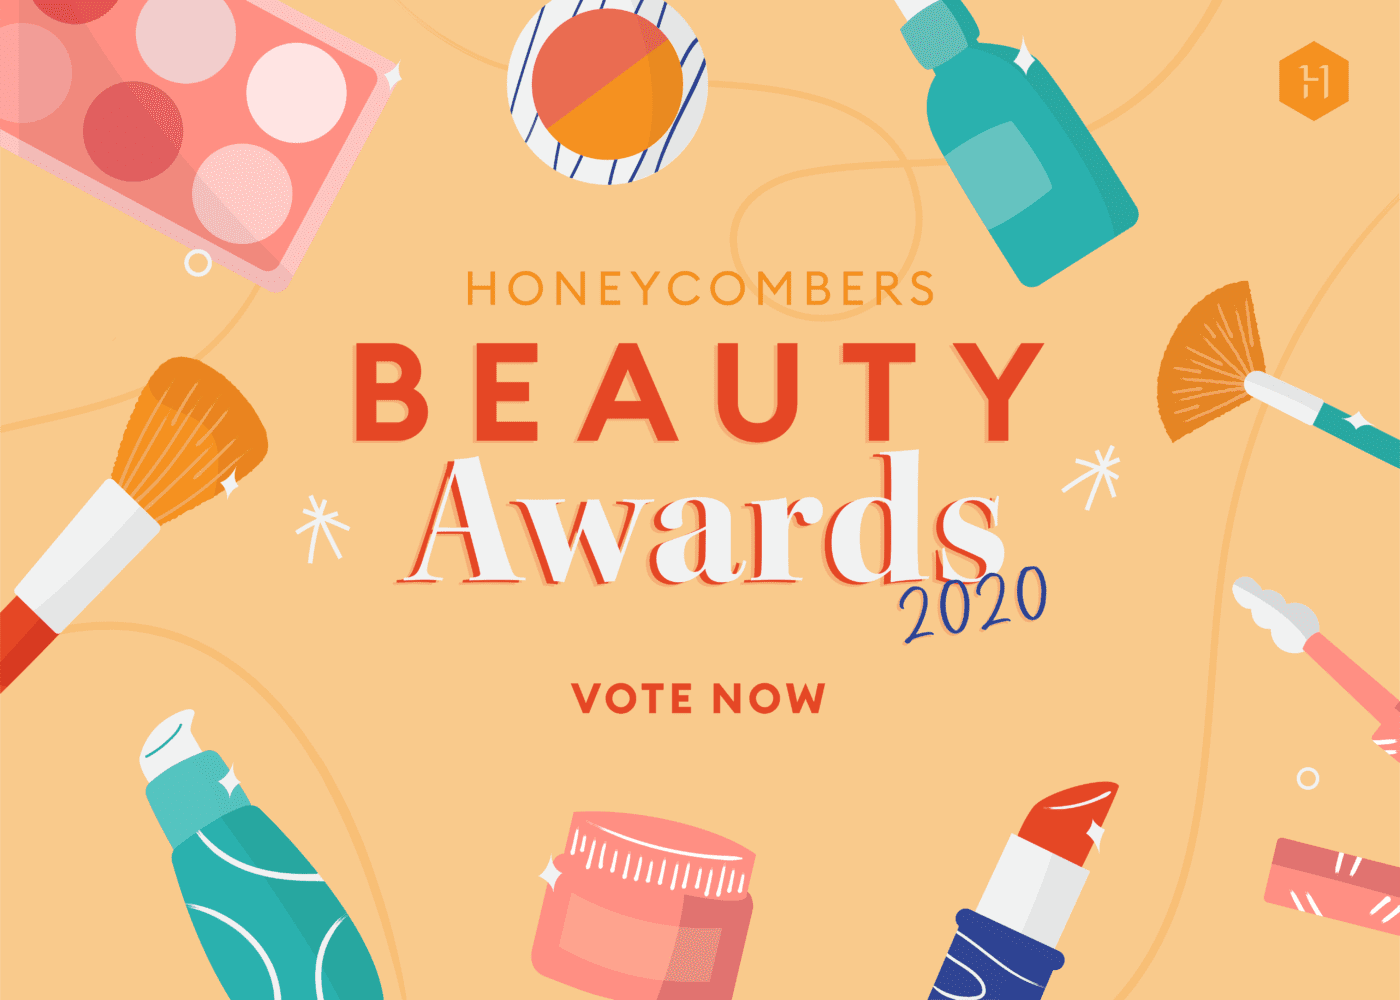 Honeycombers Beauty Awards 2020 | Vote now!